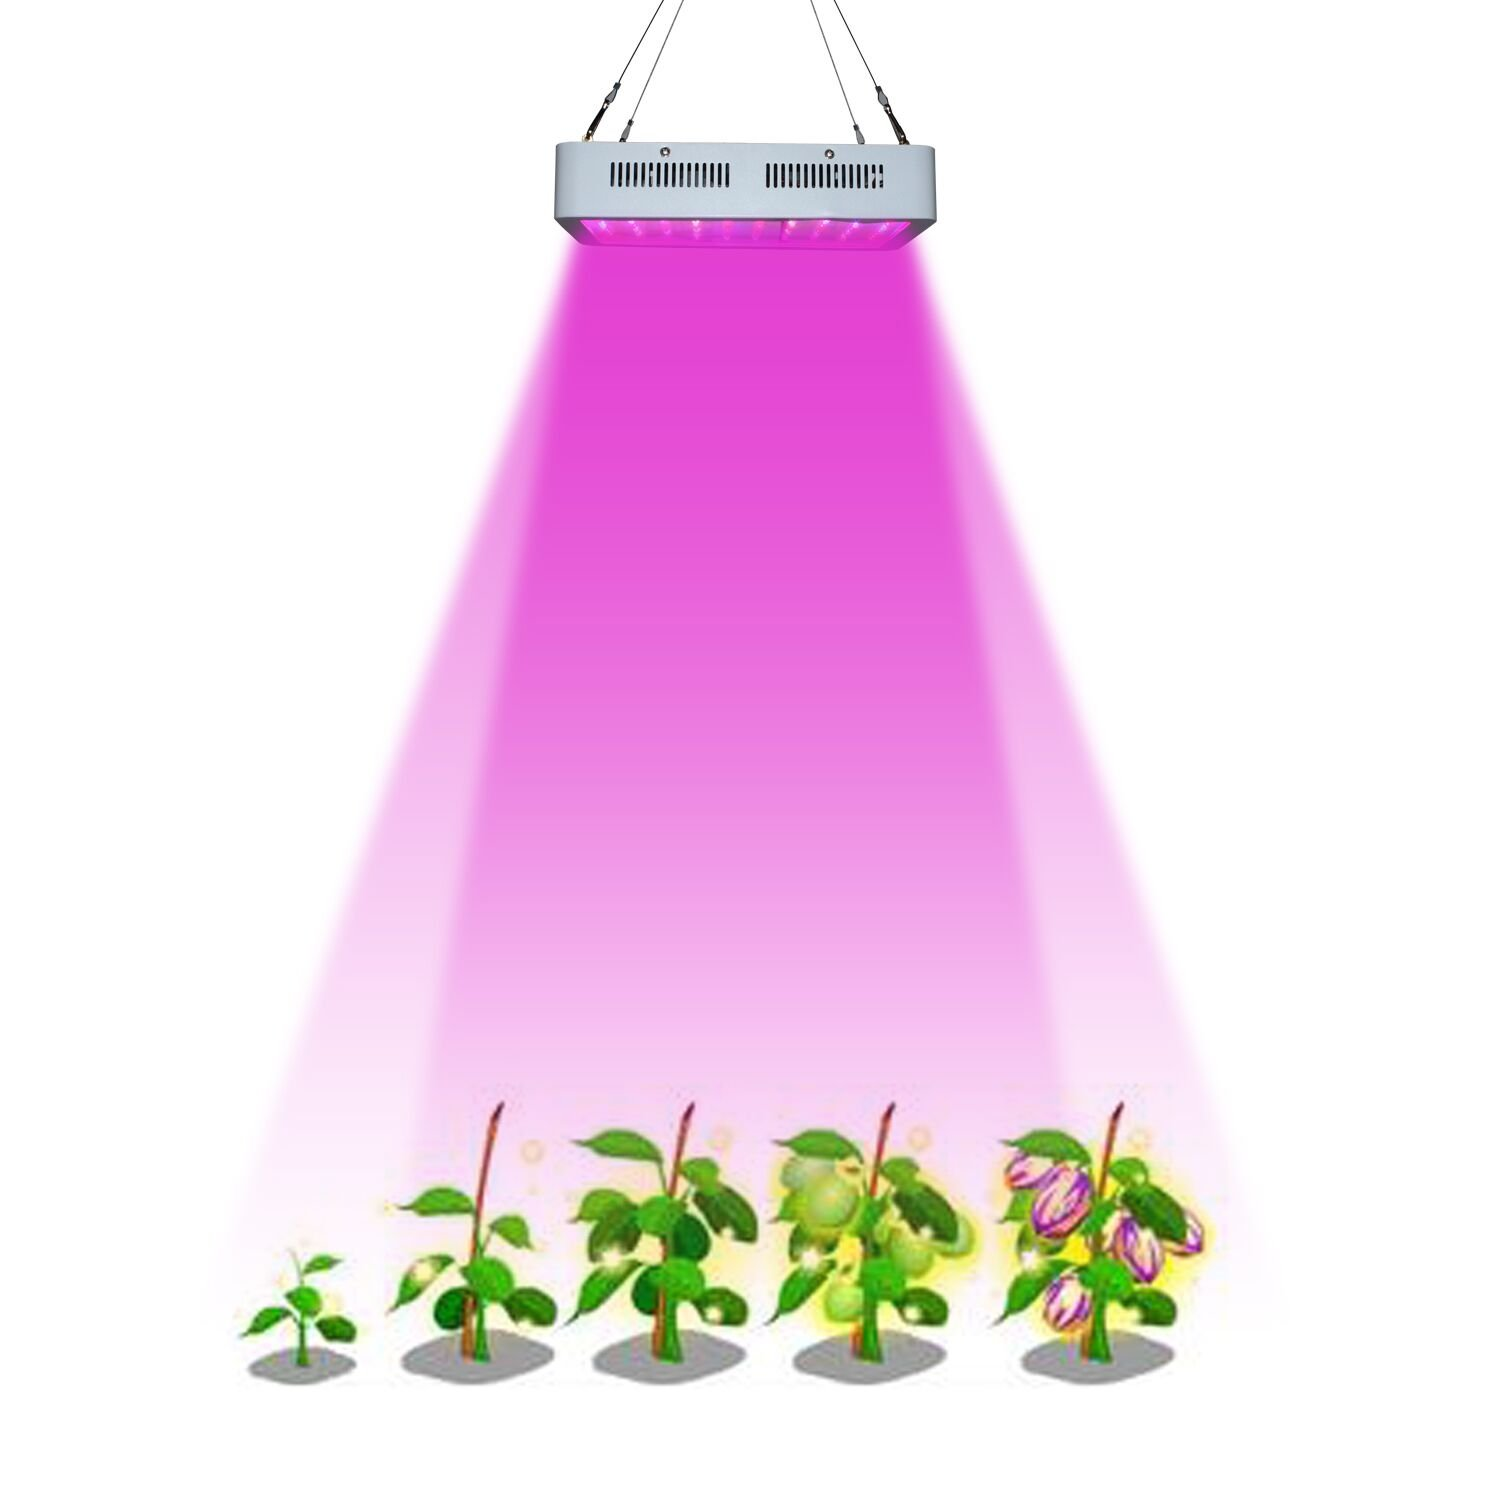 RYSA LIGHT LED Indoor Grow Light 1000W Full Spectrum Double Chips Growing Lamps with UV IR for Garden Plants Veg Flower Hydroponic Greenhouse